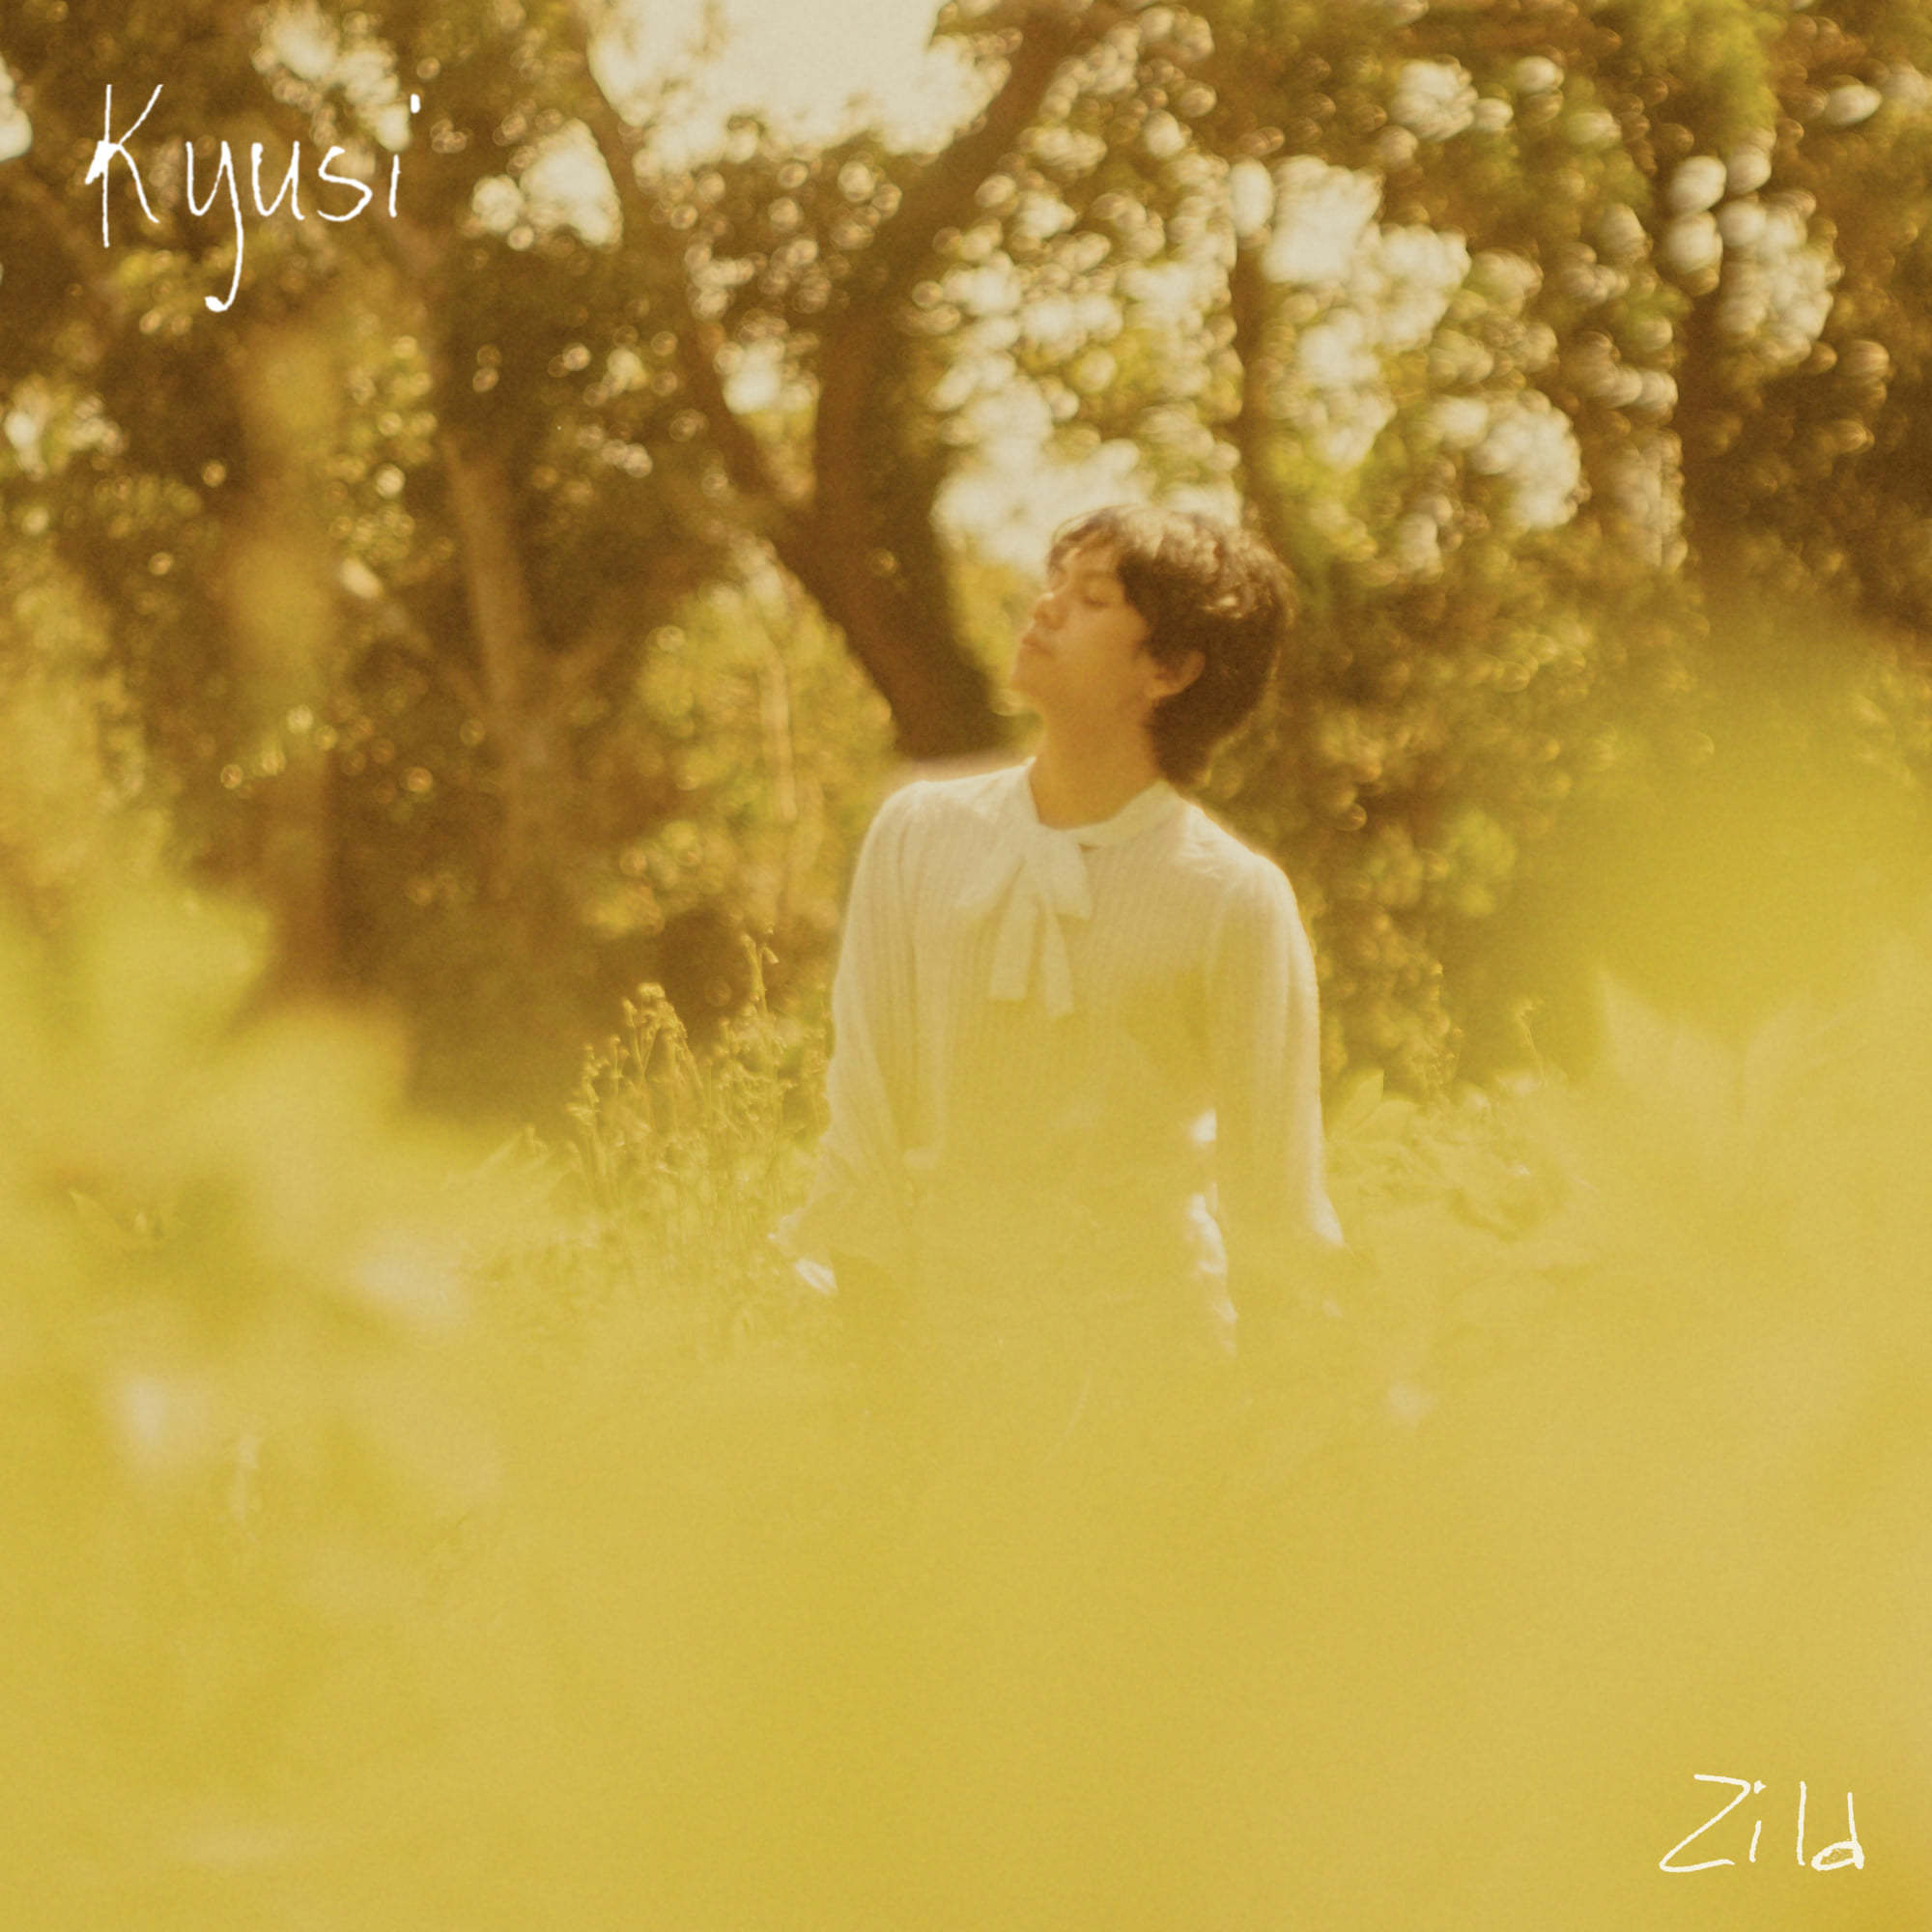 """Zild Revisits His Own Wonder Years With His All-New Single """"Kyusi"""""""